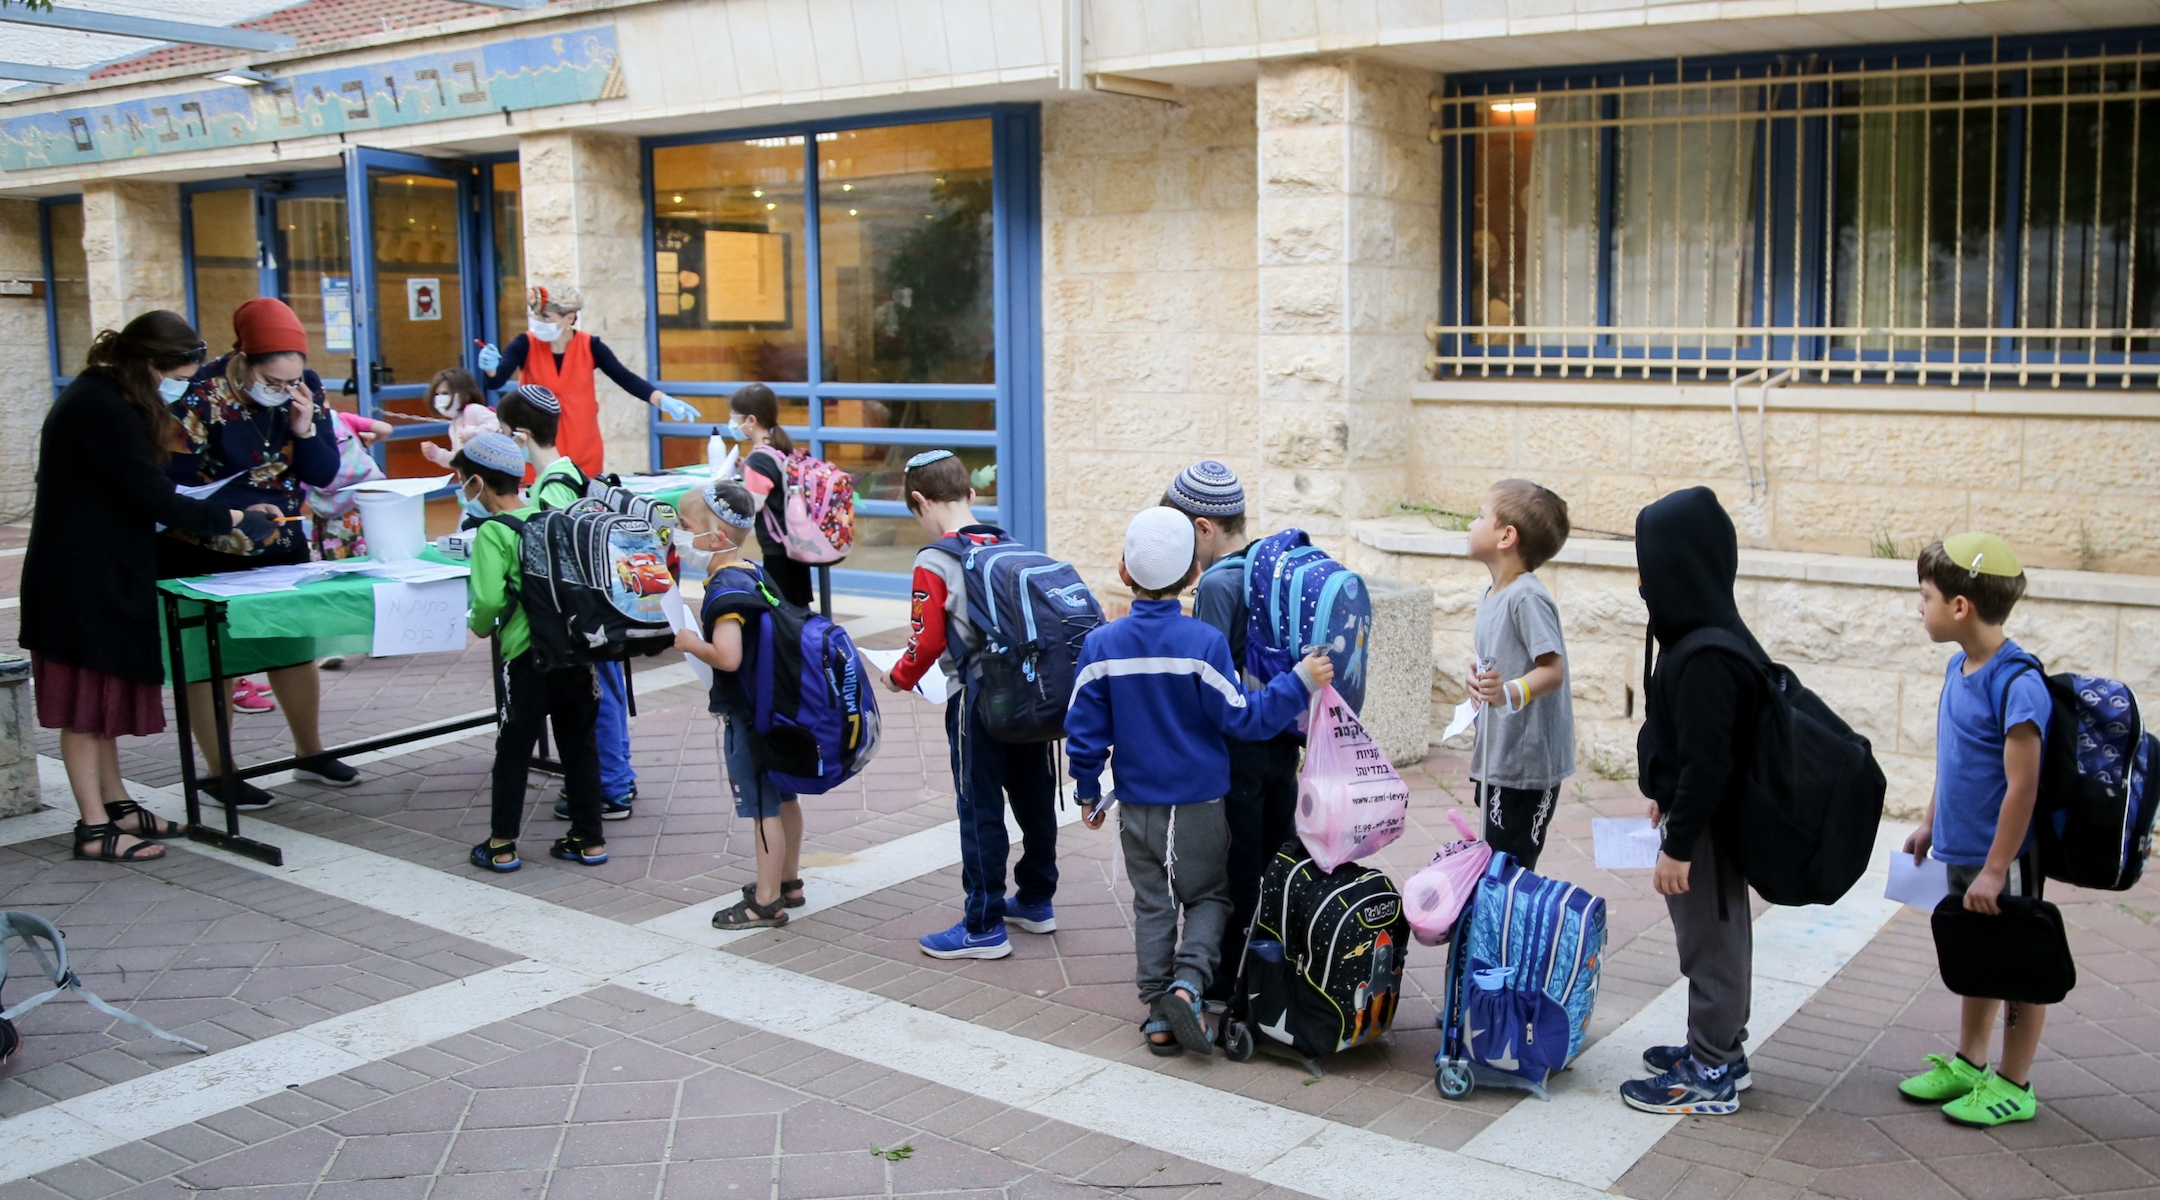 Israel to limit class sizes, keep older students home in second attempt at reopening schools